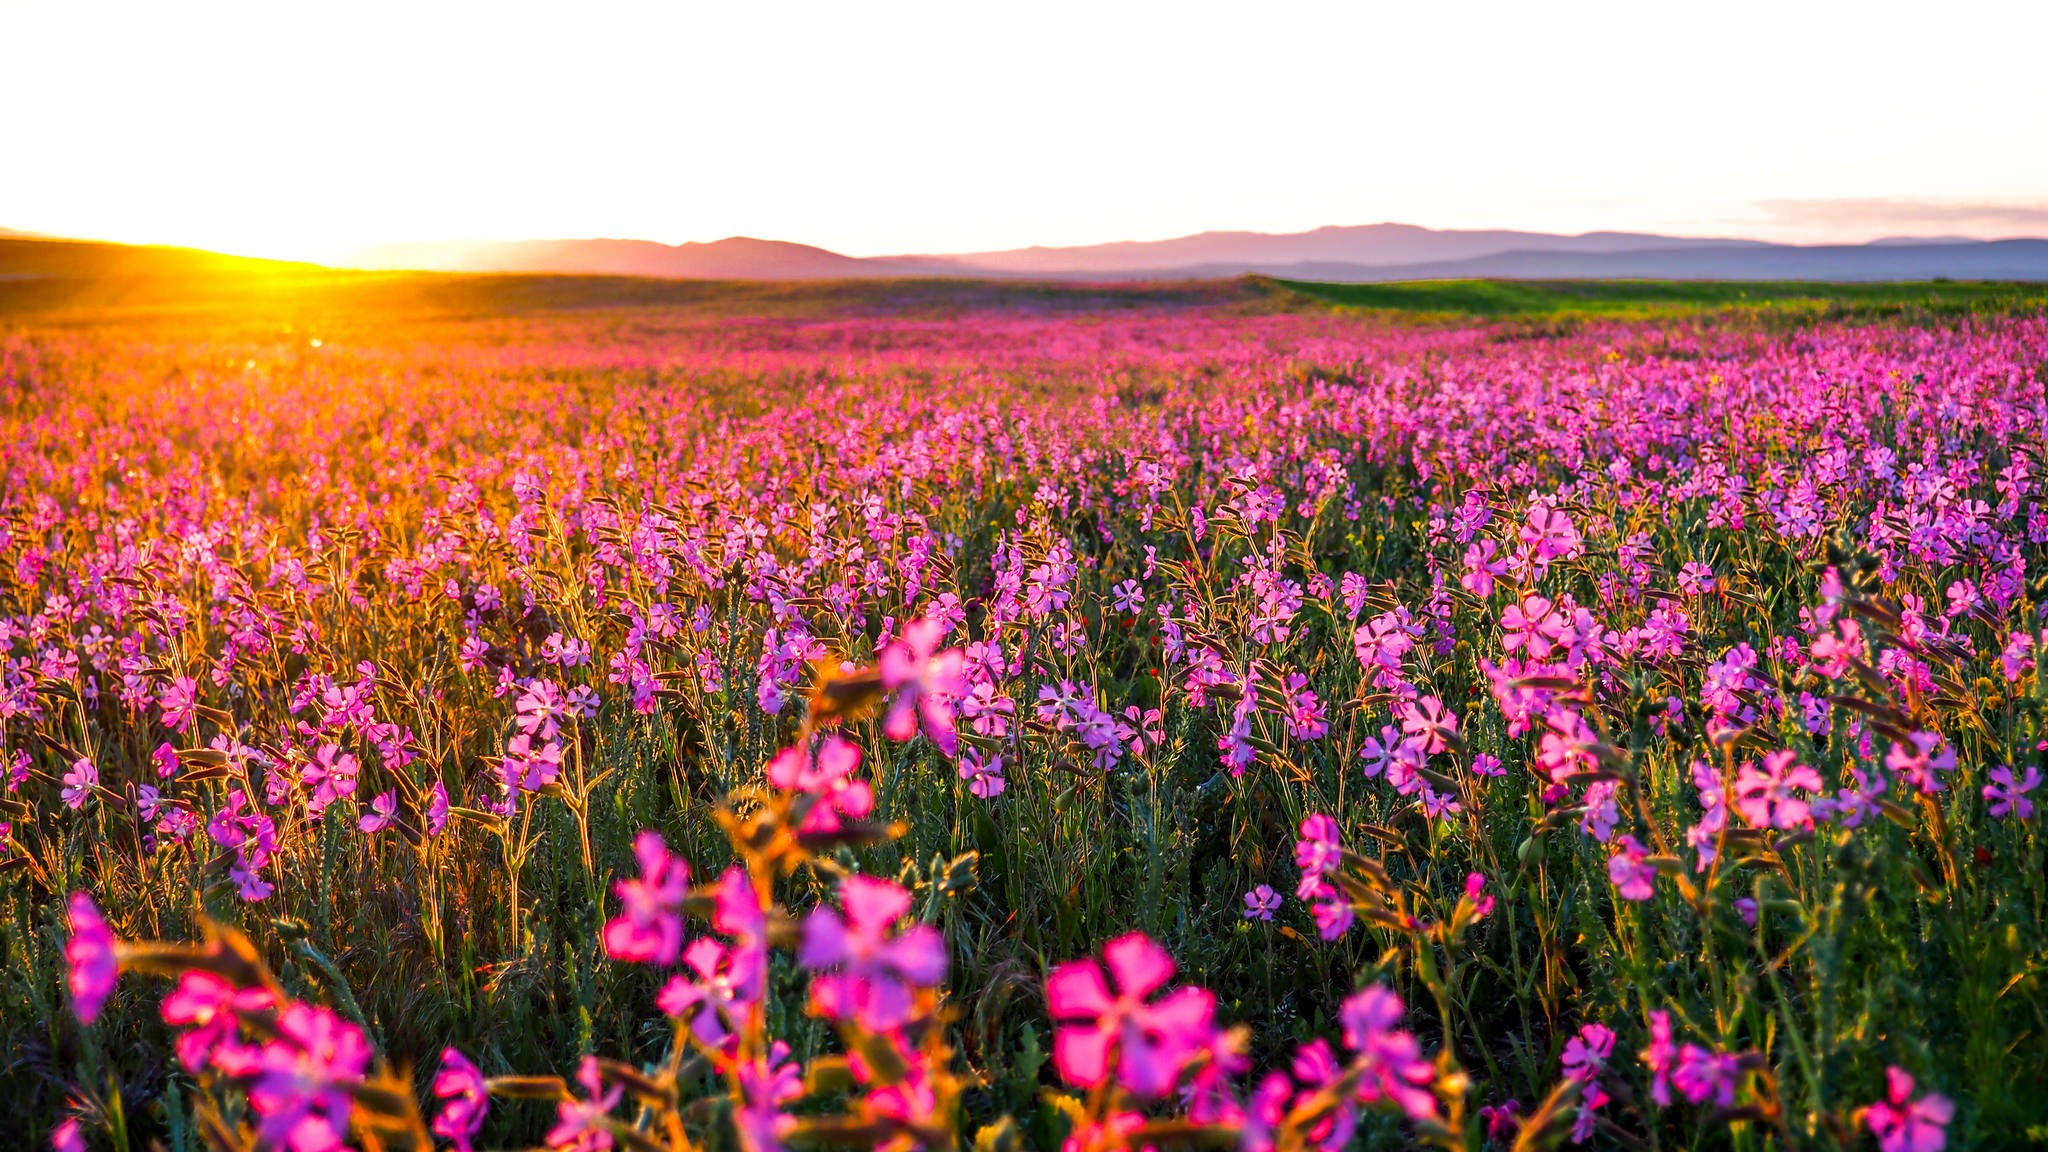 Flowers landscape hd nature 4k wallpapers images for Flower landscape